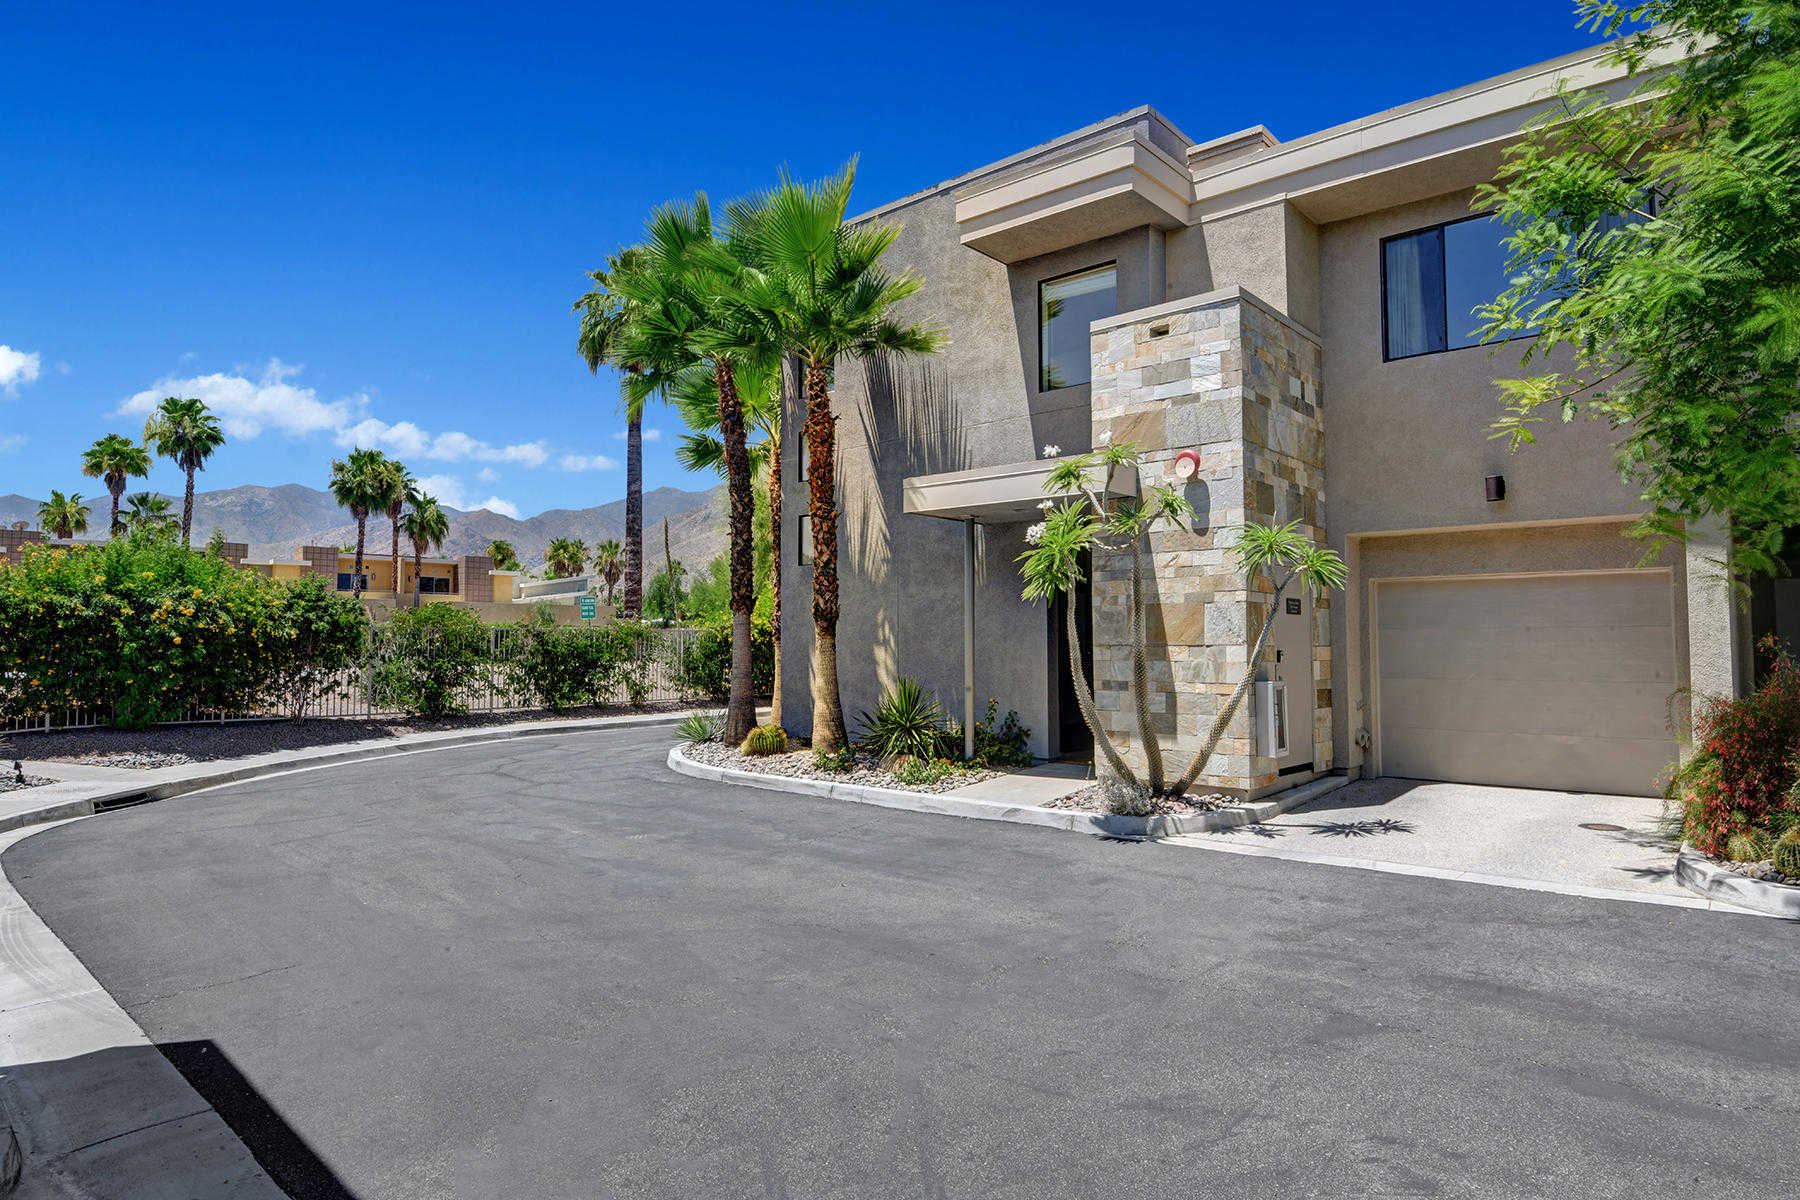 $385,000 - 2Br/2Ba -  for Sale in Biltmore Colony, Palm Springs